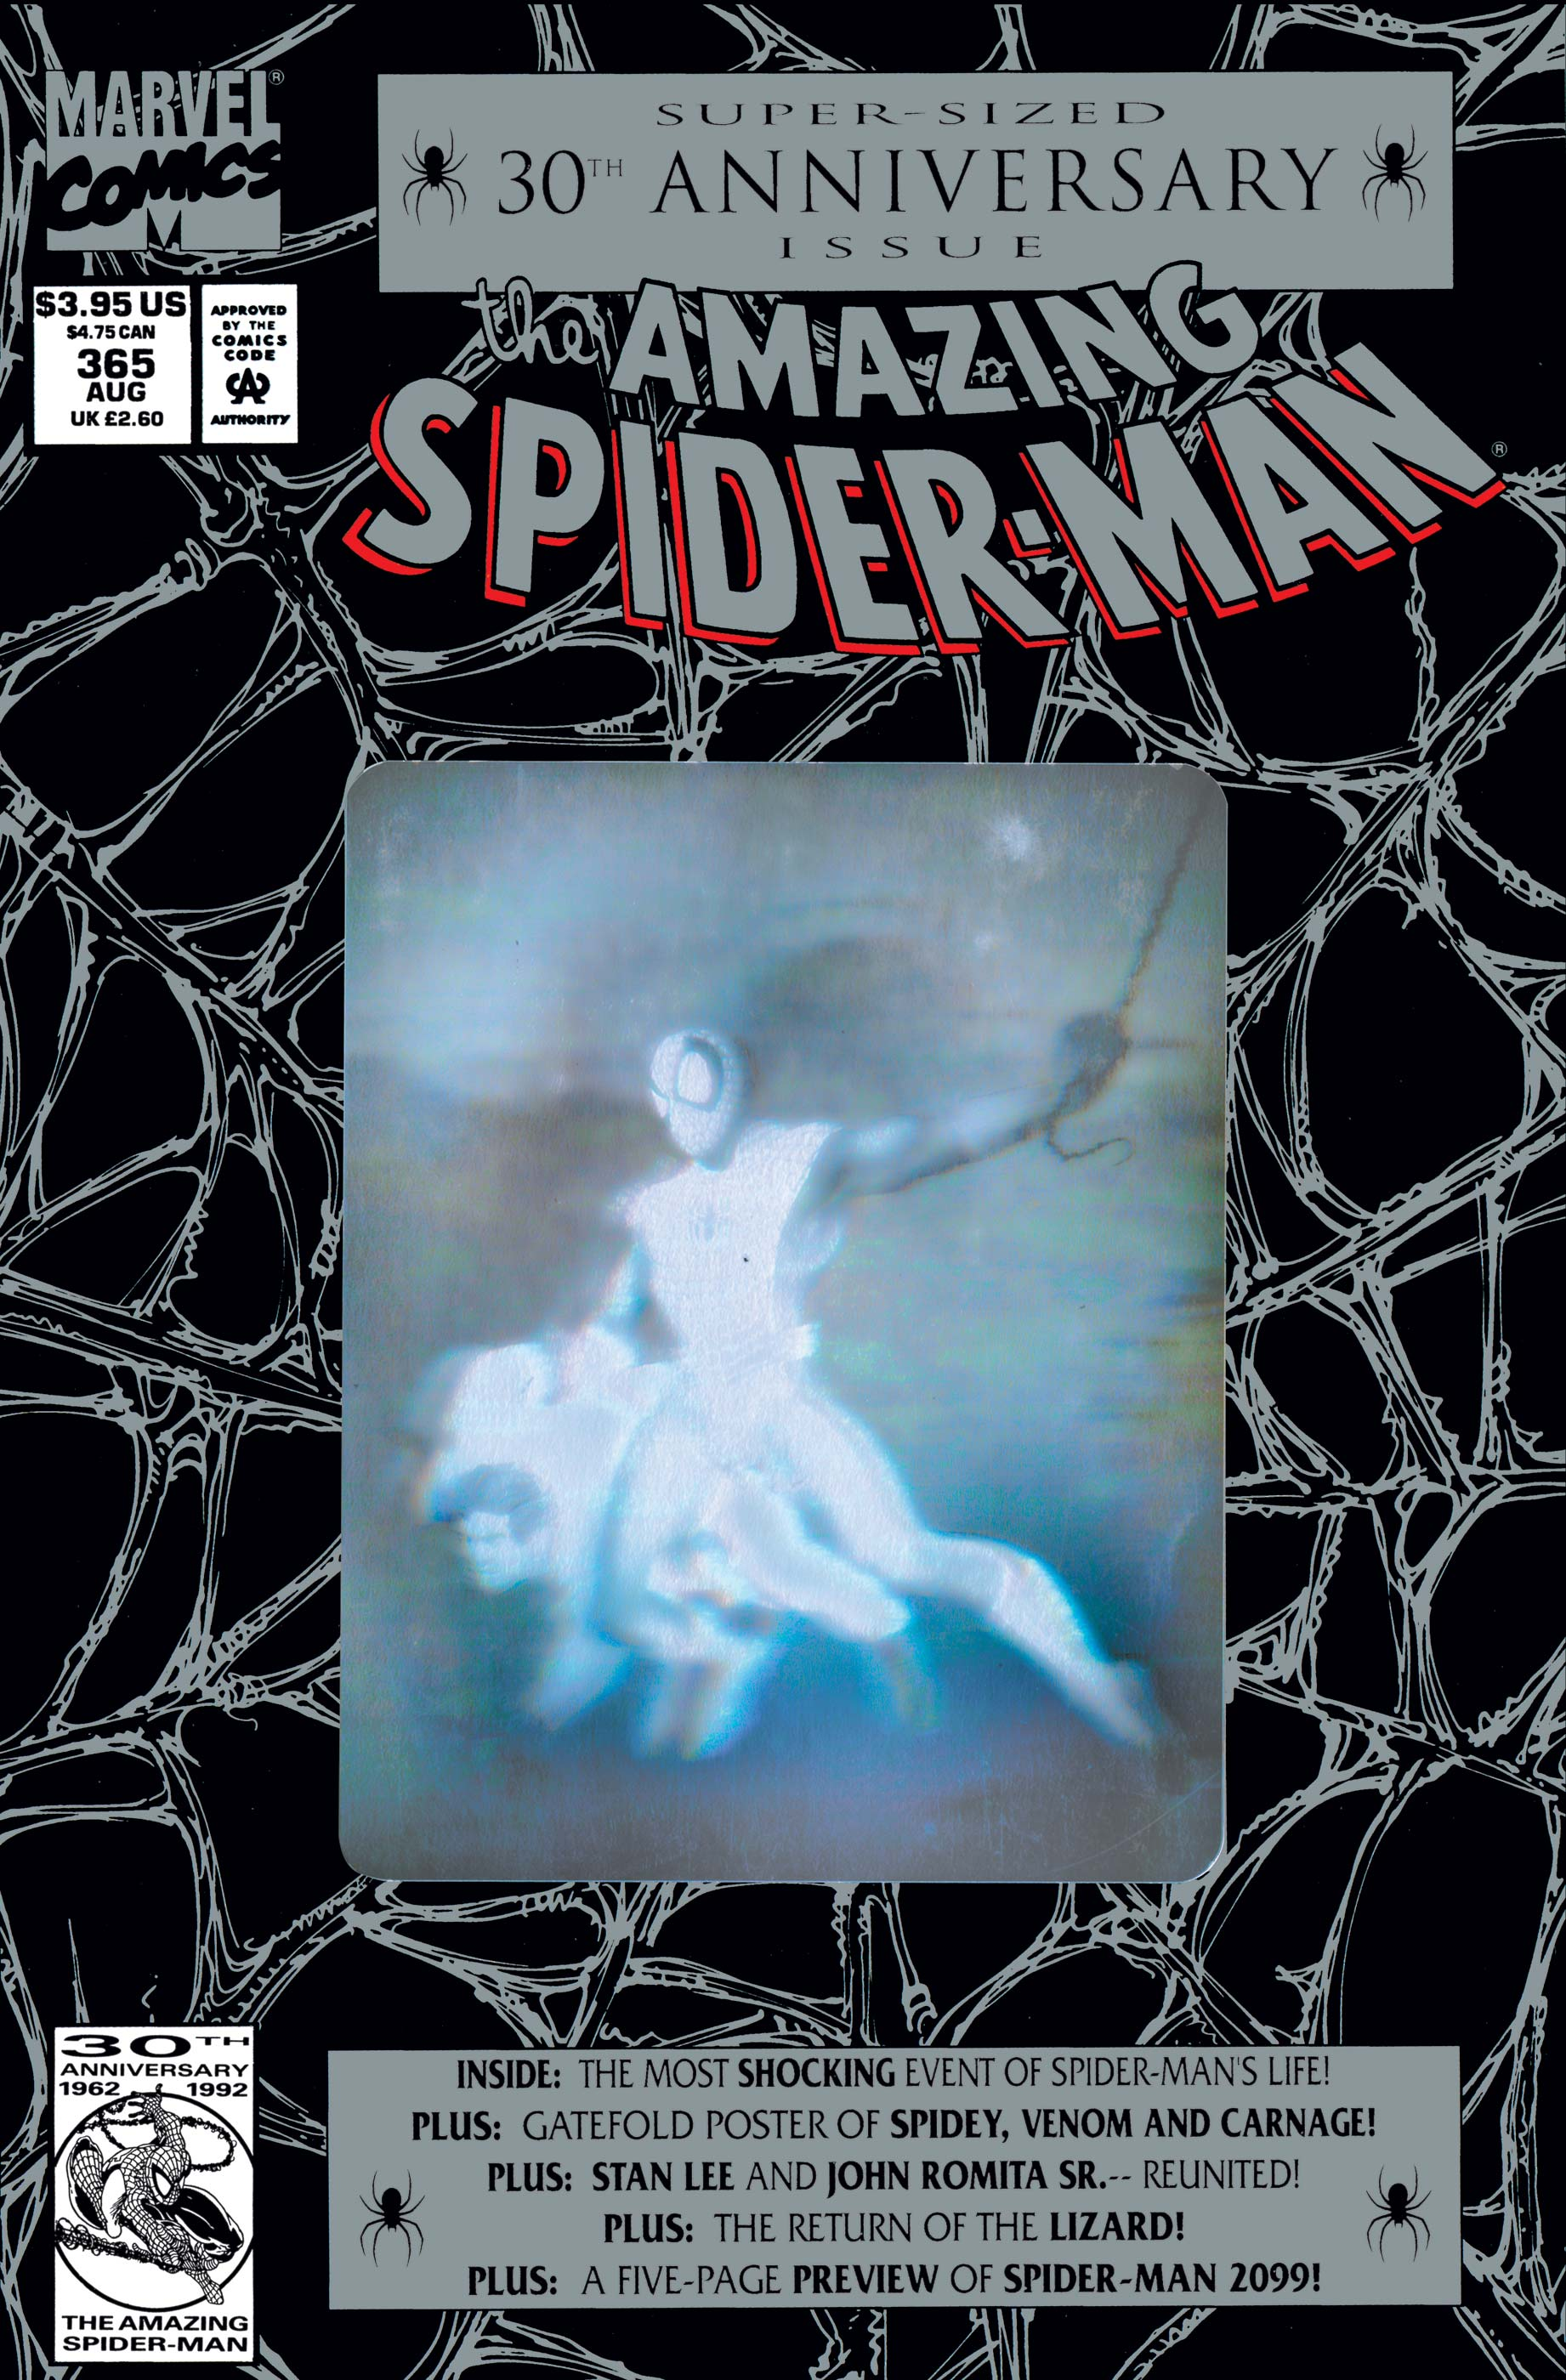 The Amazing Spider-Man (1963) #365